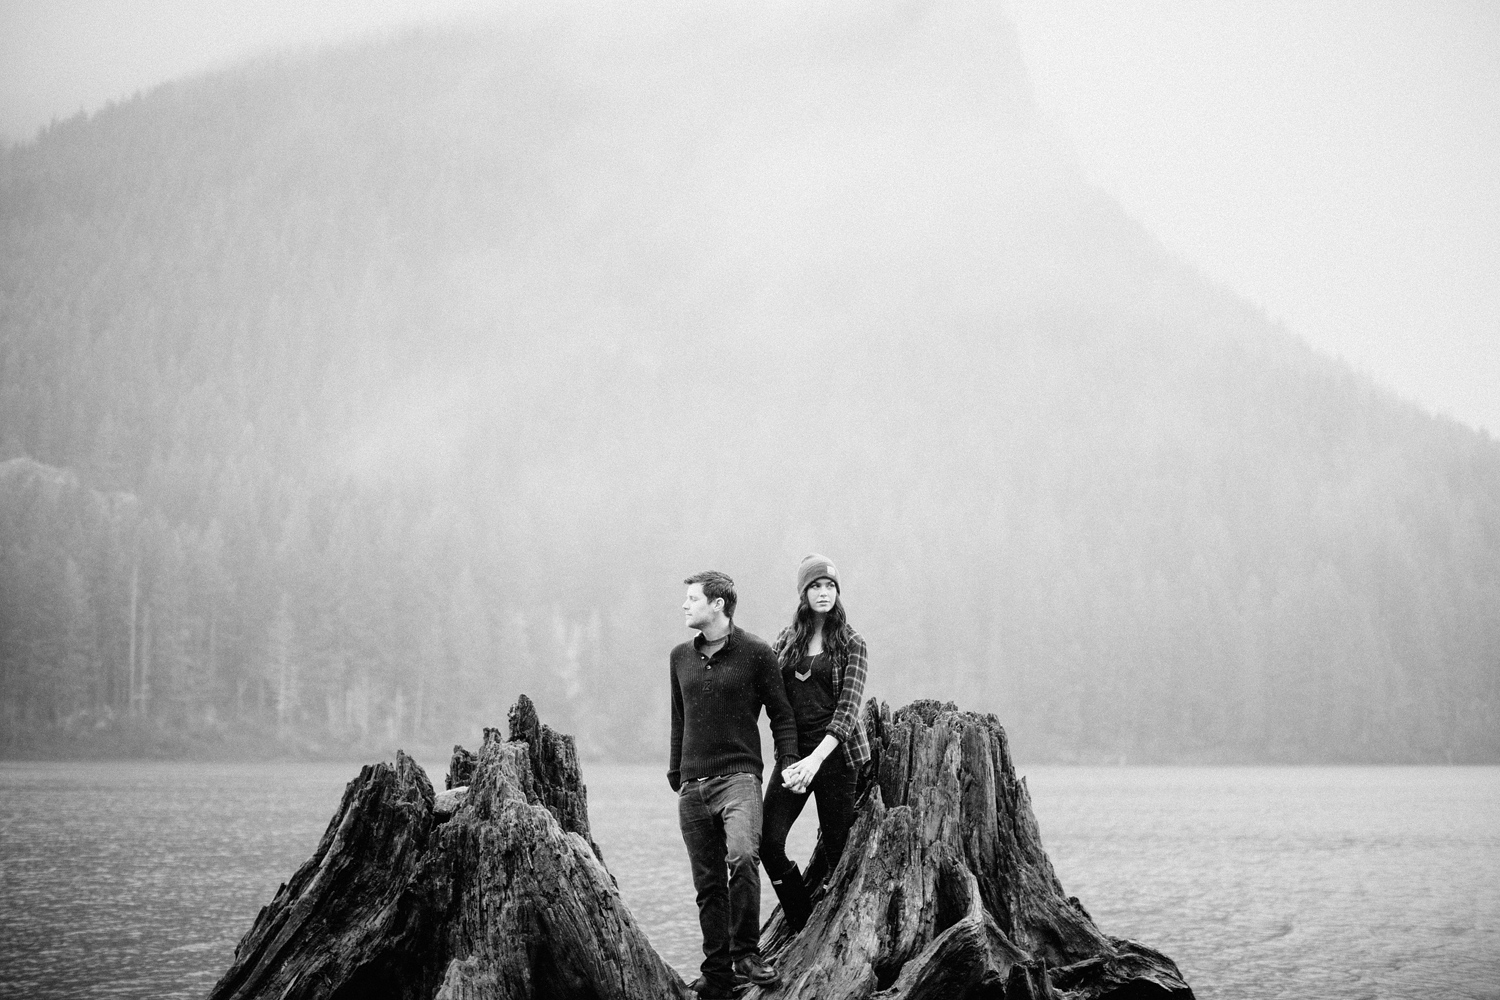 ryan-flynn-photography-rattlesnake-lake-engagement-film-blog-0005.JPG